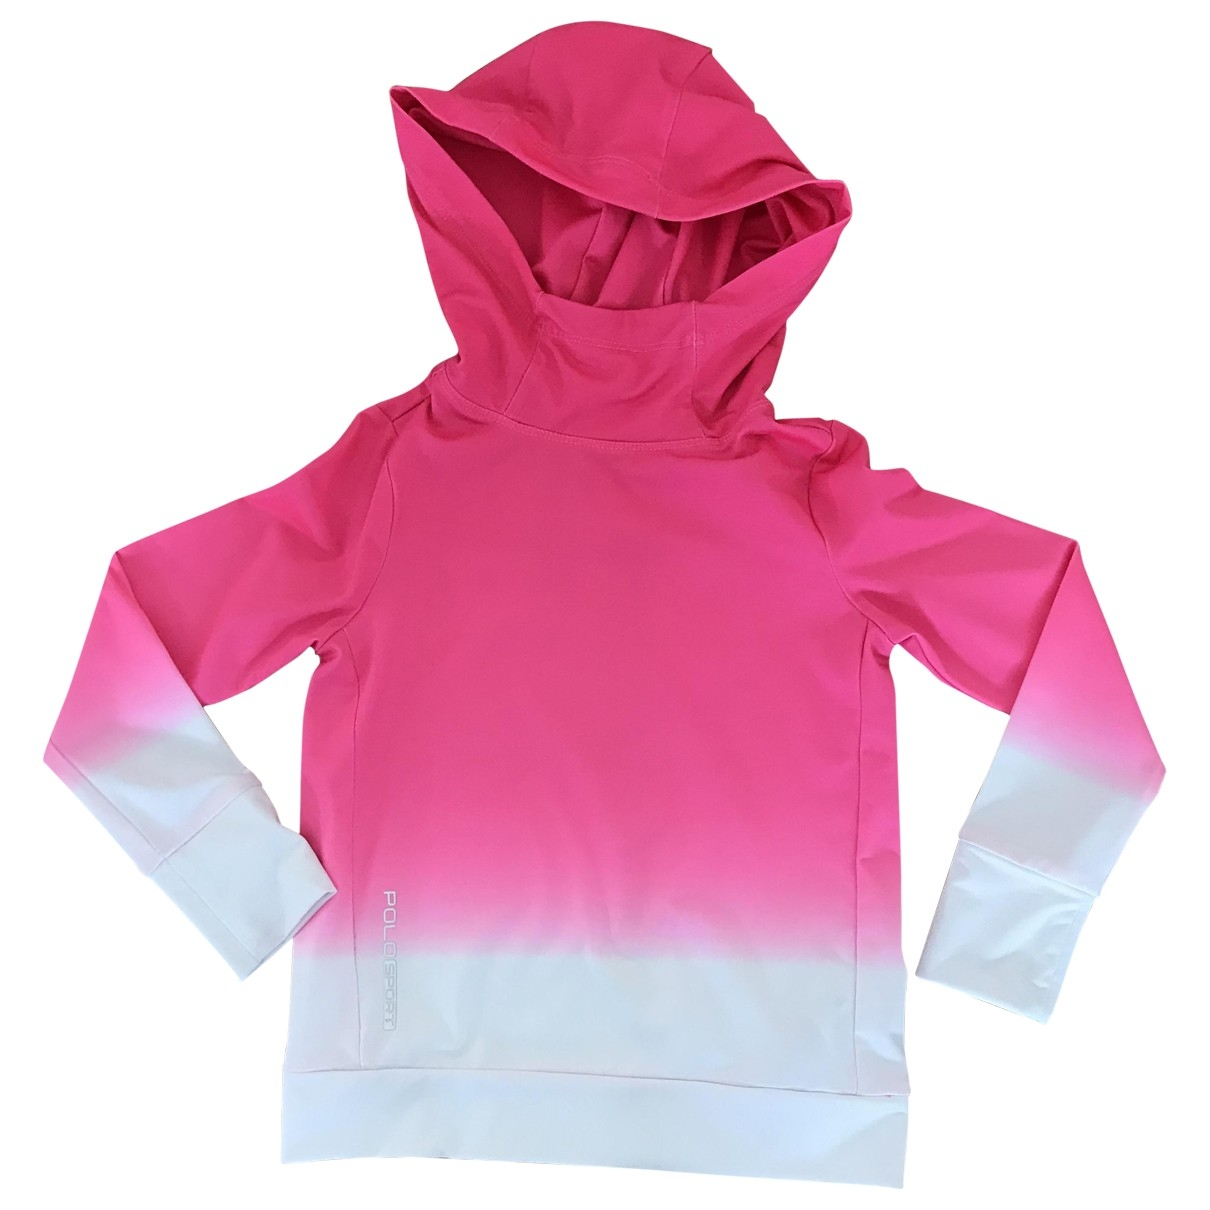 Polo Ralph Lauren \N Pink  top for Kids 5 years - until 42.5 inches UK